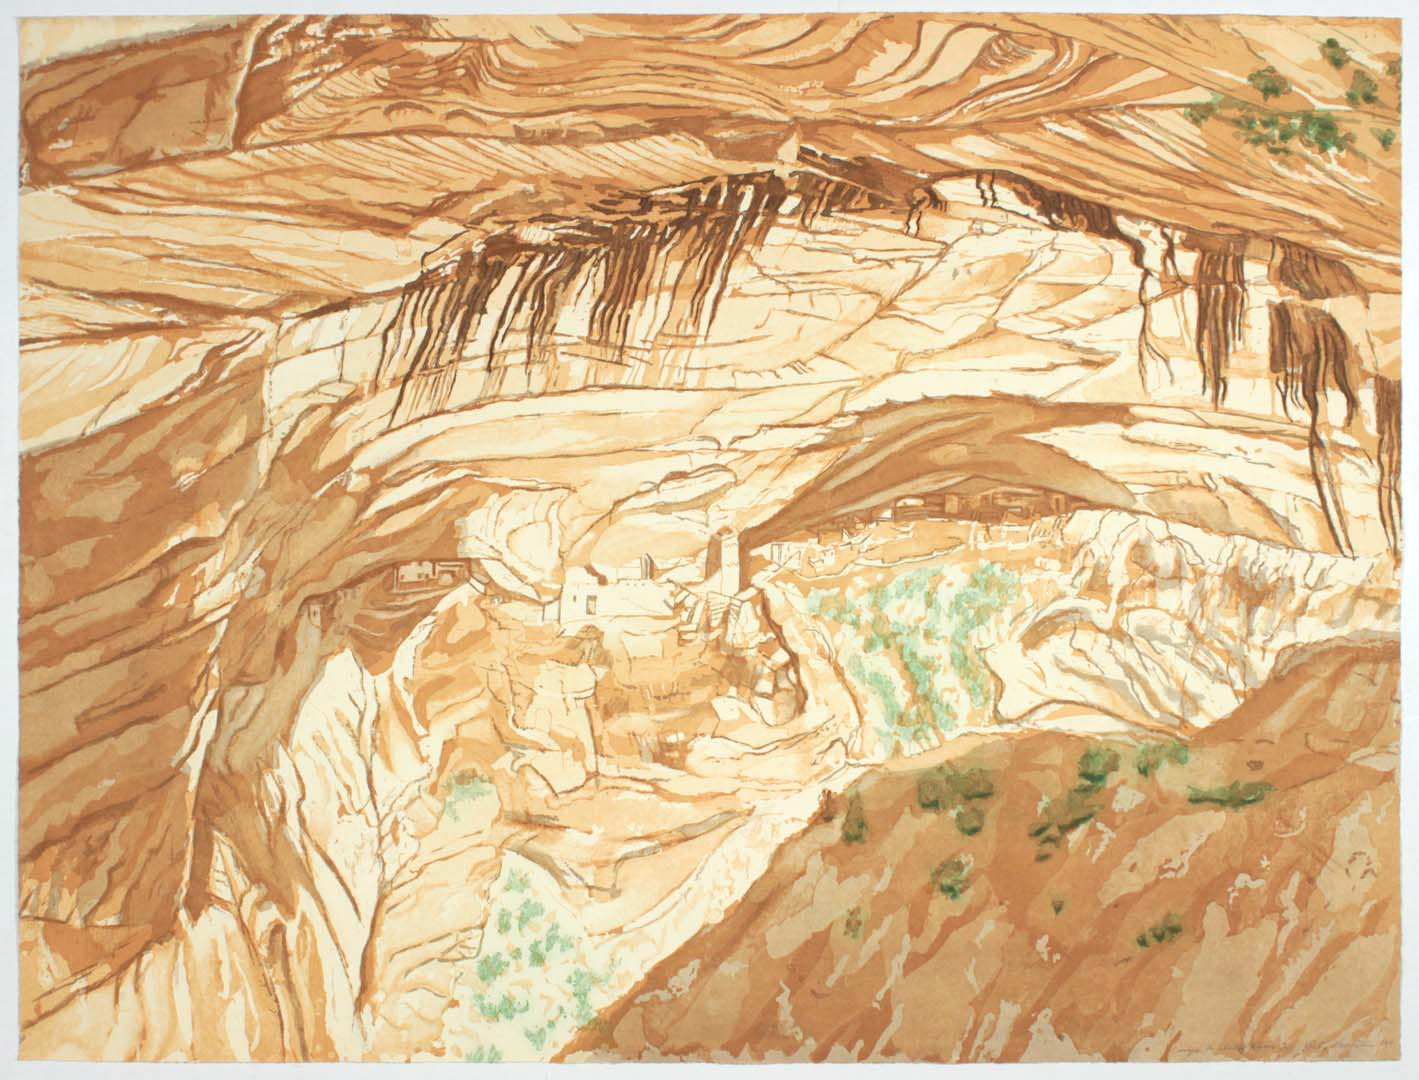 "1994 Canyon de Chelly Ruins Aquatint Etching on Paper 33.25"" x 44.5"""